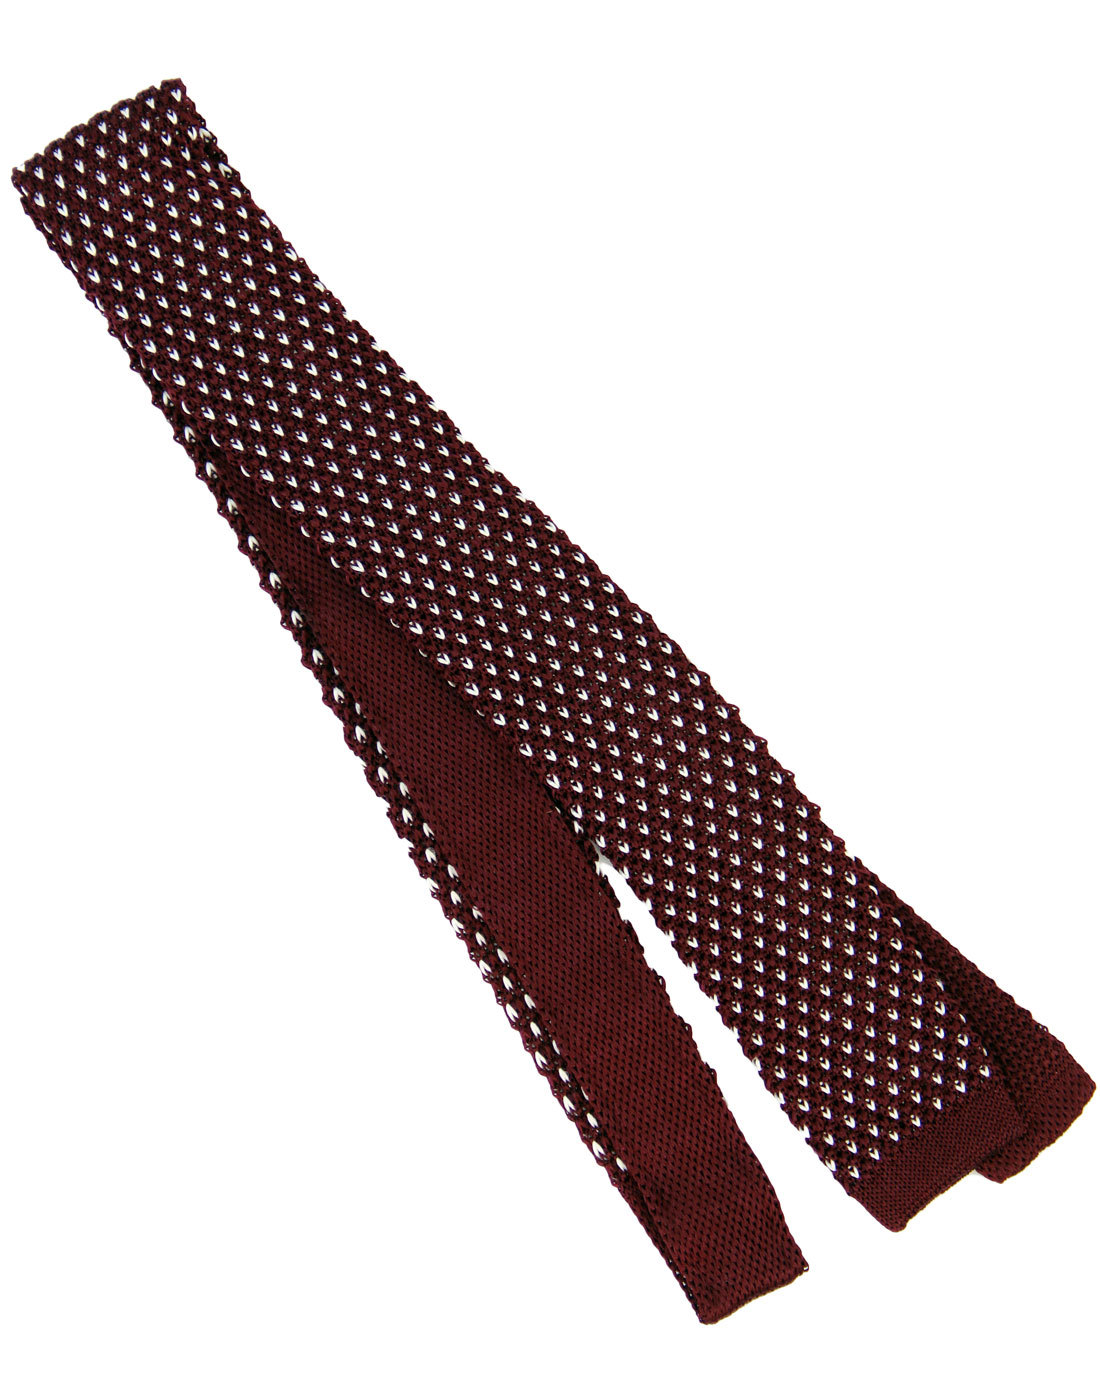 TOOTAL Retro 60s Mod Silk Knitted Dot Tie BURGUNDY